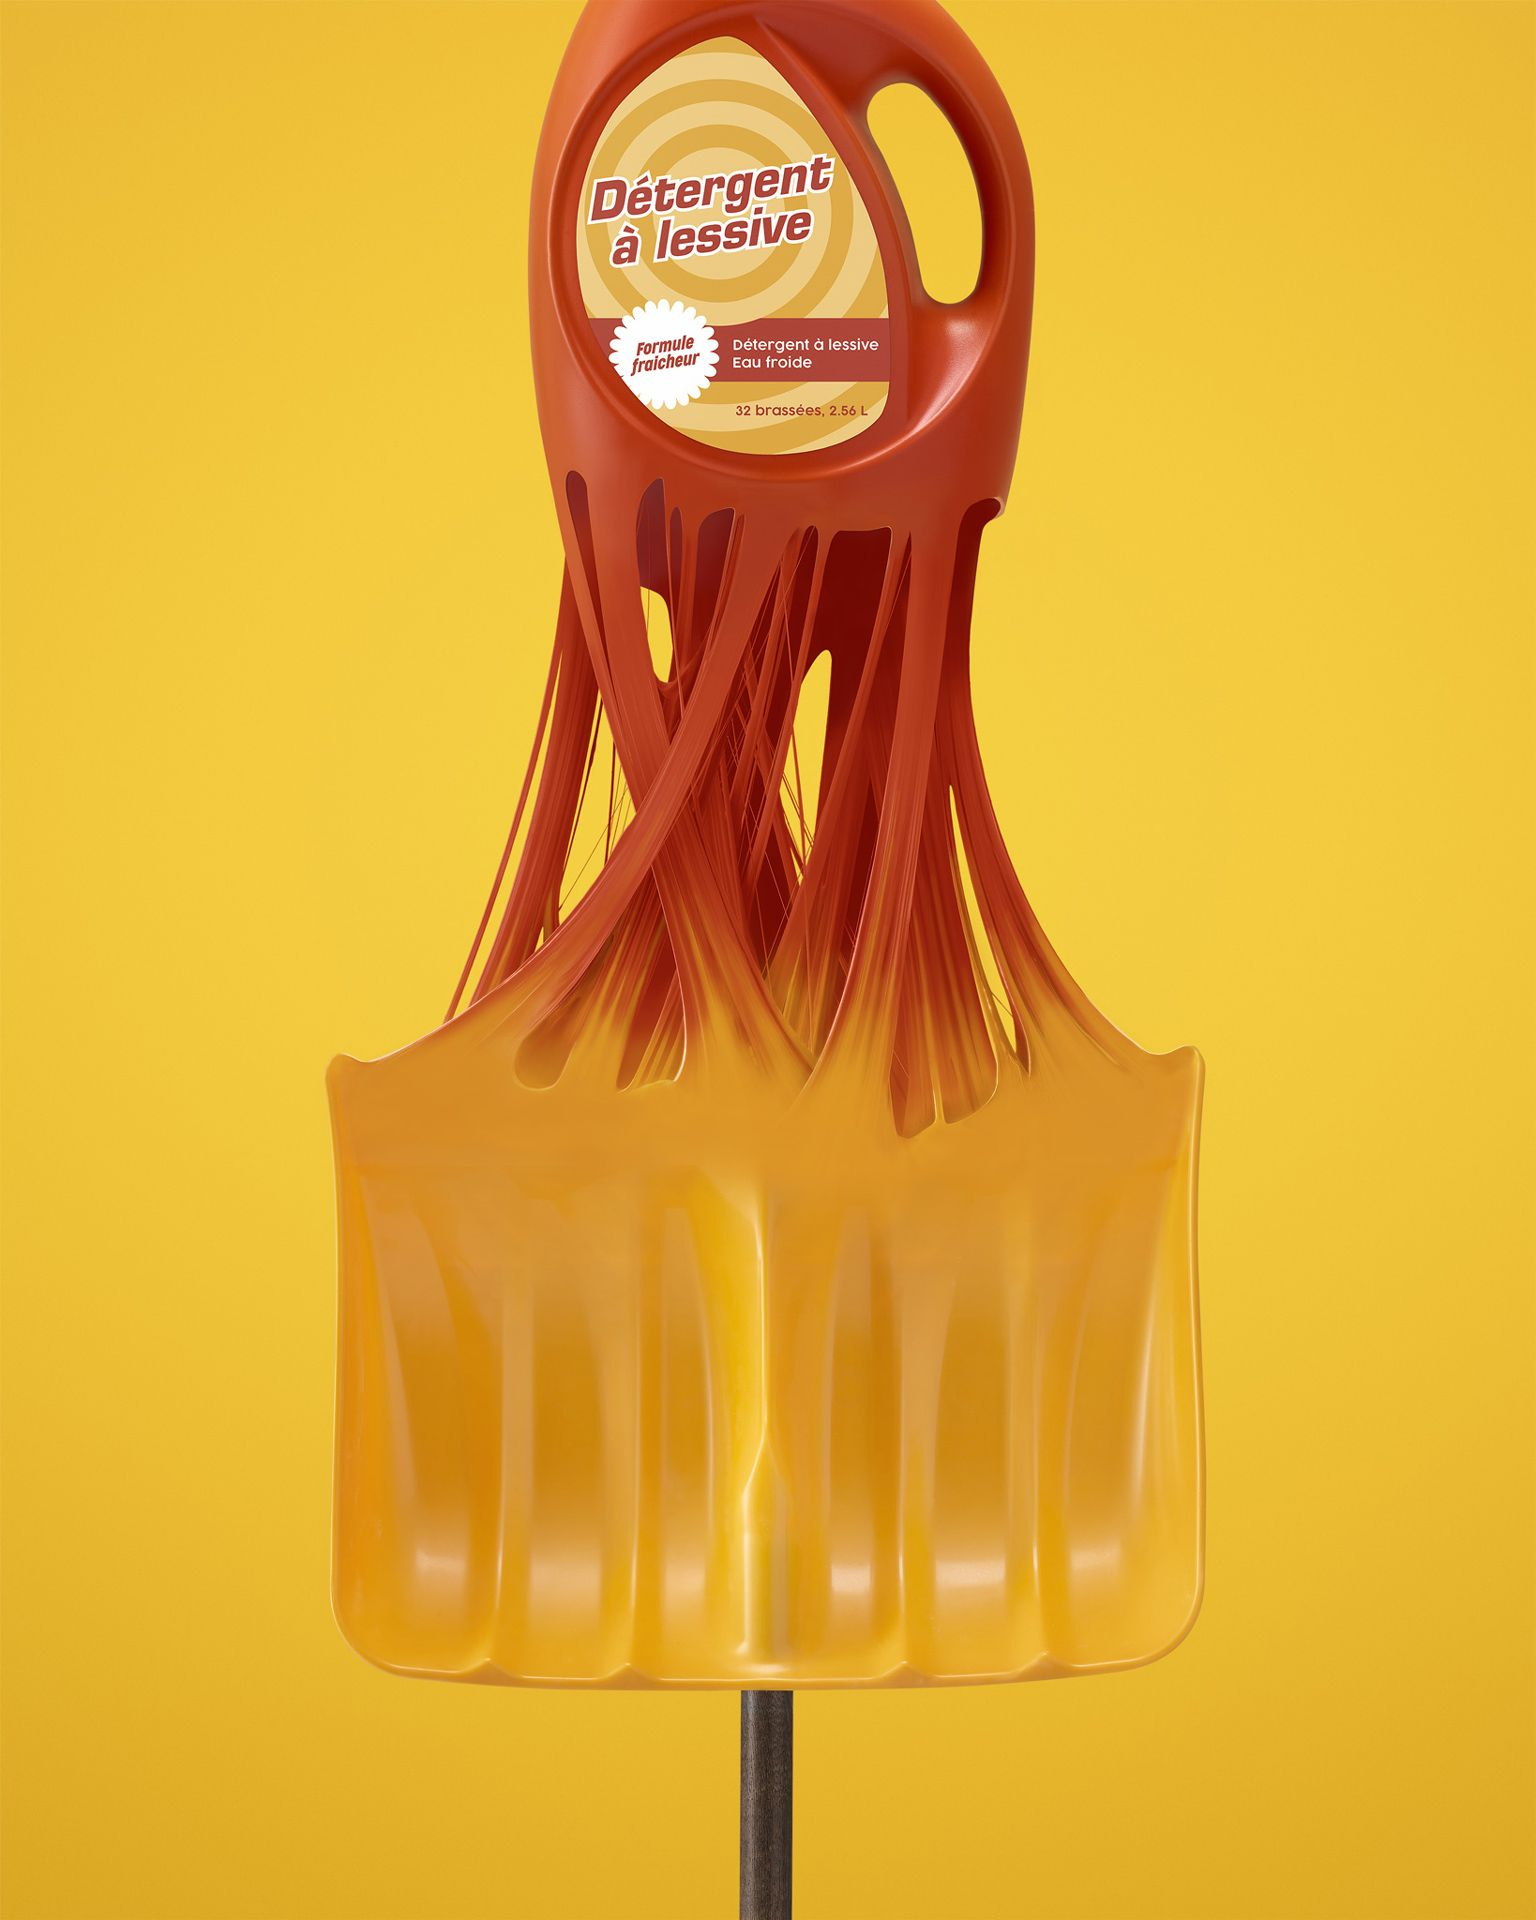 bottle of detergent transforming into snow shovel on yellow background by Mathieu Levesque